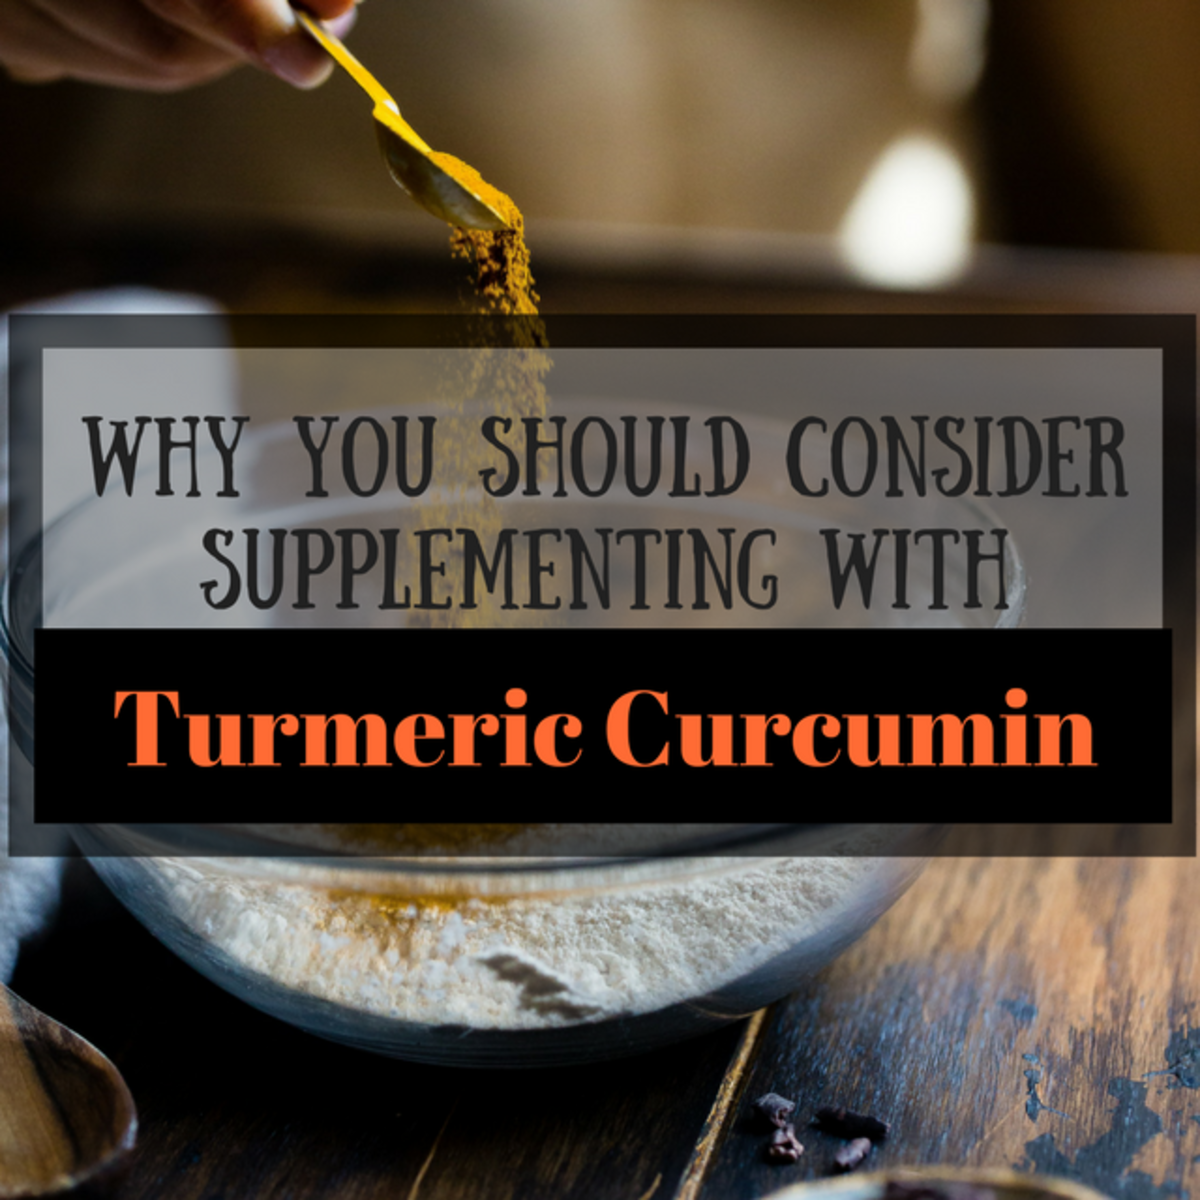 Why You Should Consider Supplementing With Turmeric Curcumin